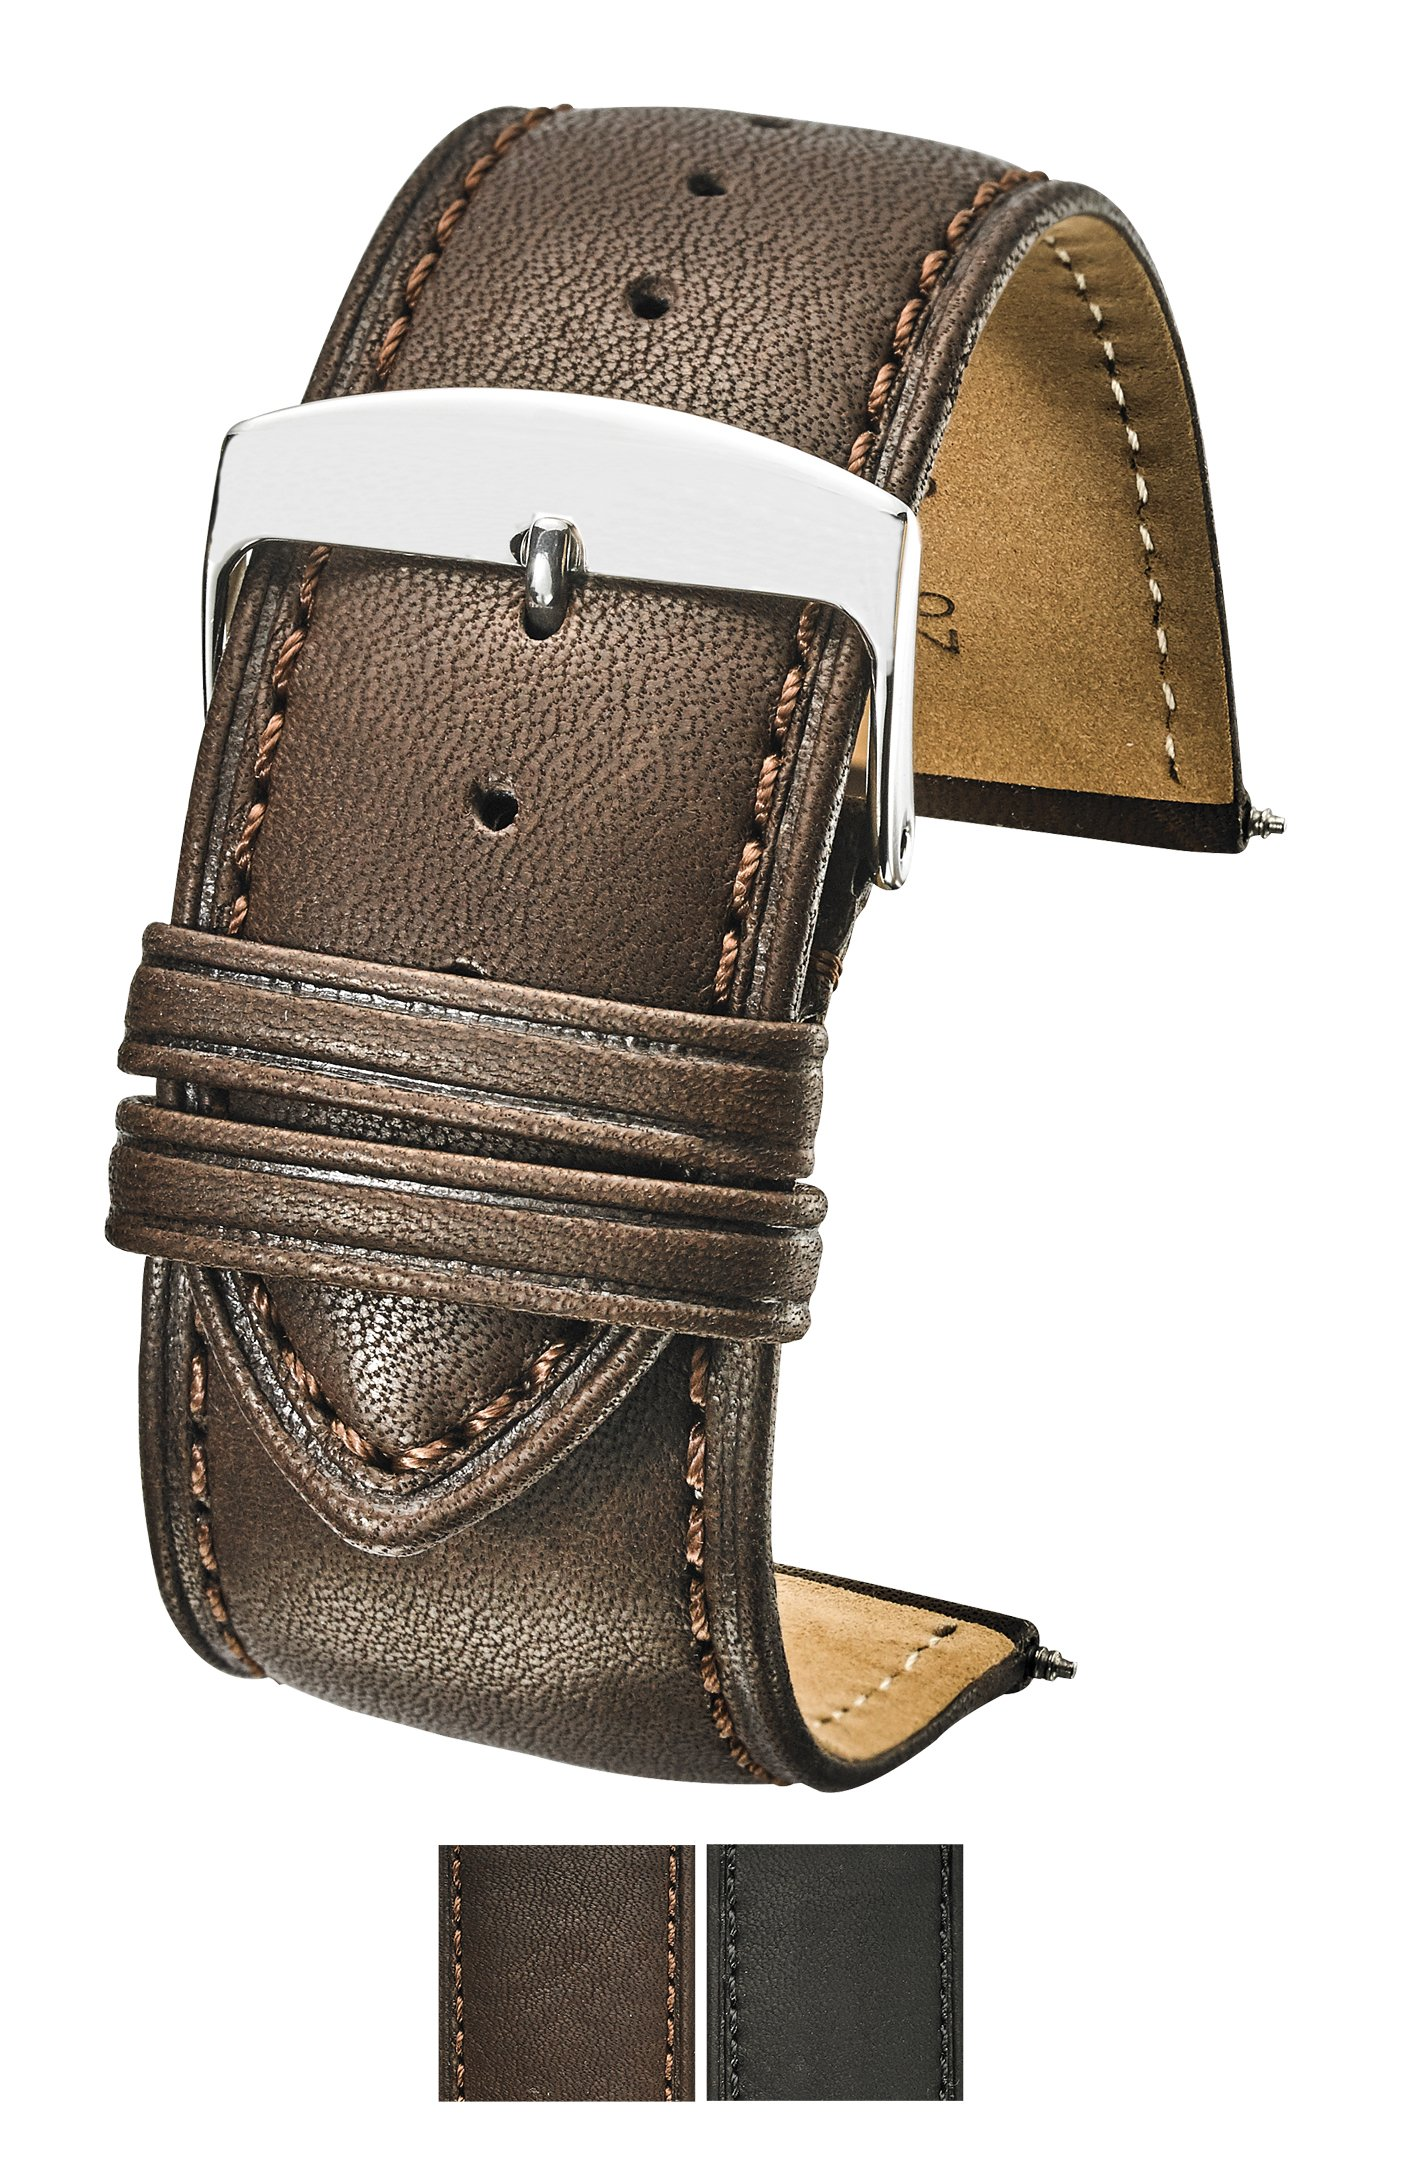 Genuine Leather Watch Band (fits Wrist Sizes 6-7 1/2 inch)- Brown - 30mm by STUNNING SELECTION (Image #1)